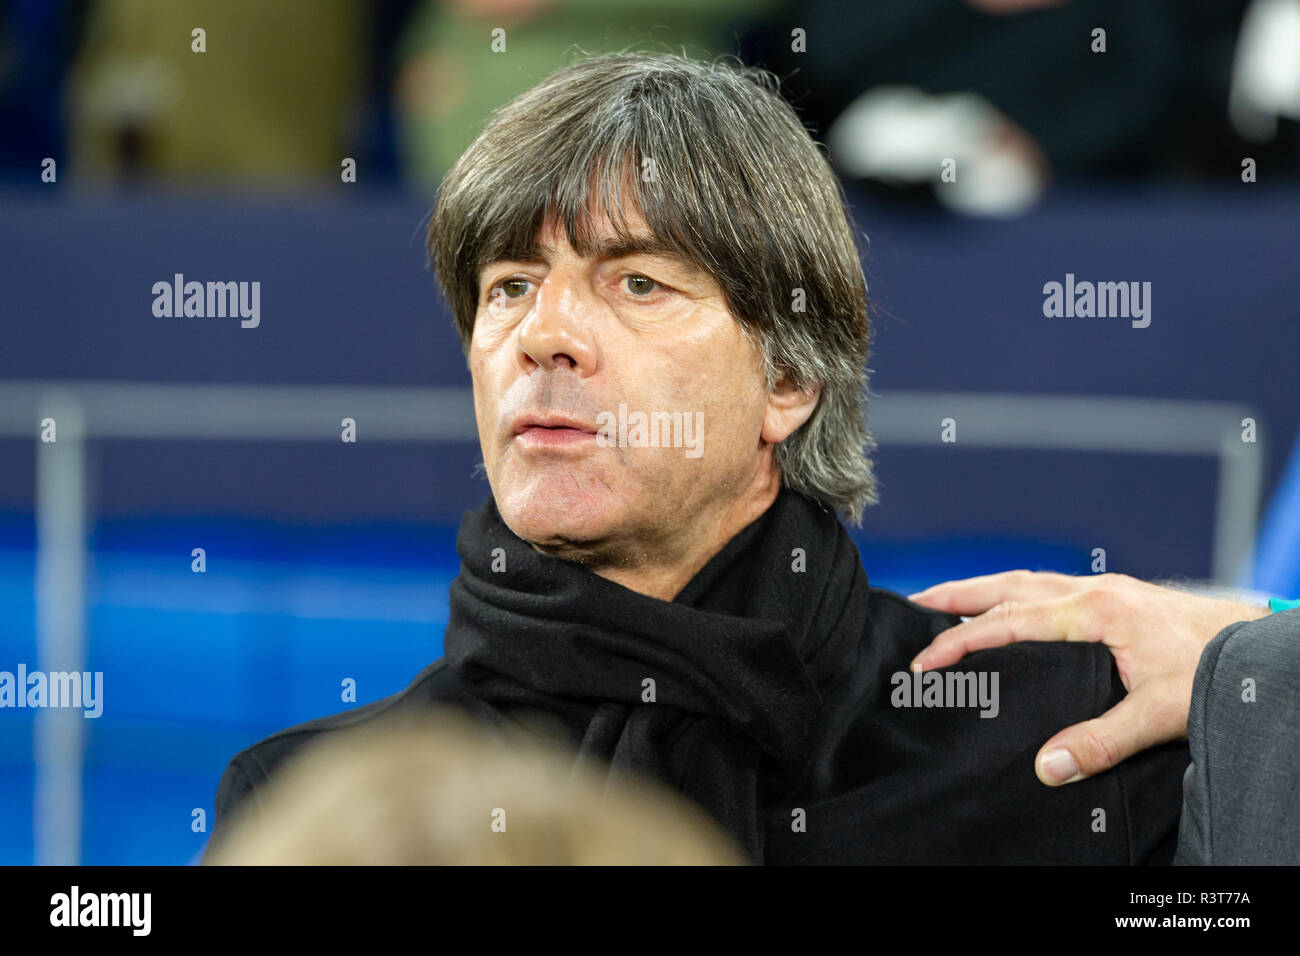 Gelsenkirchen, Germany 18 November 2018 UEFA Nations League Germany - The Netherlands    coach Joachim Low of Germany - Stock Image